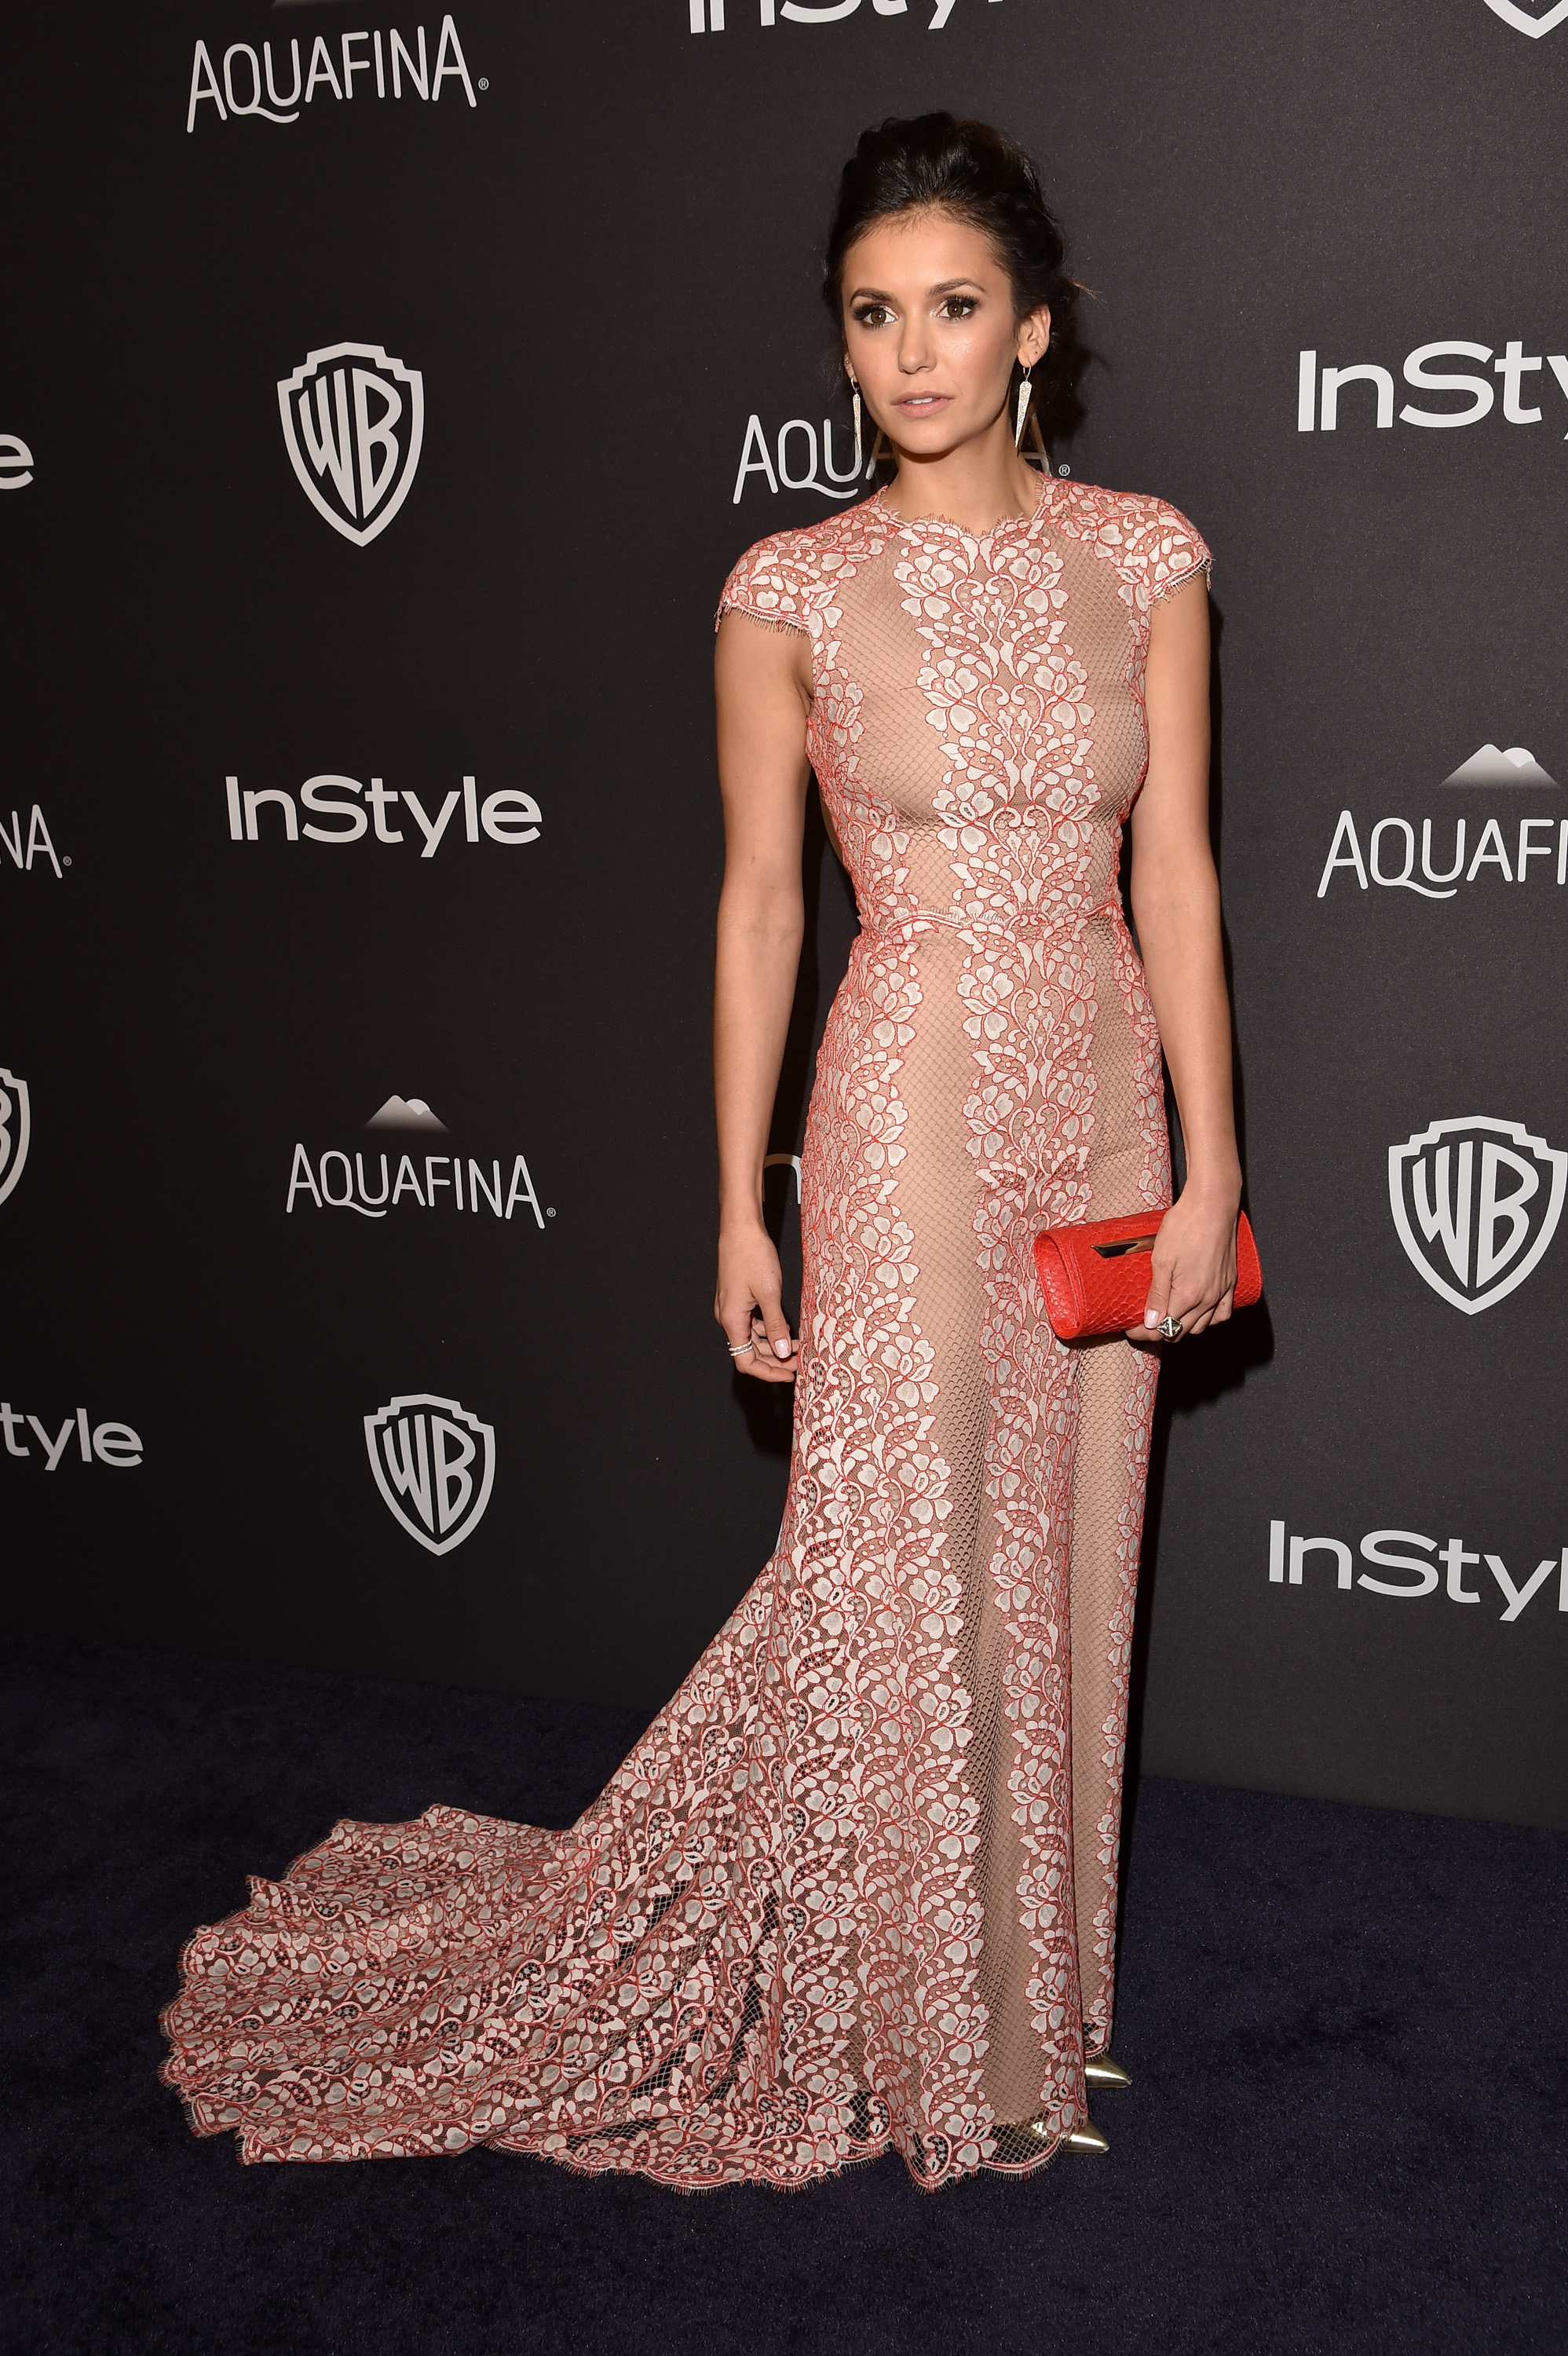 The 10 Best-Dressed At The Golden Globes After-Parties | www,styledomination.com